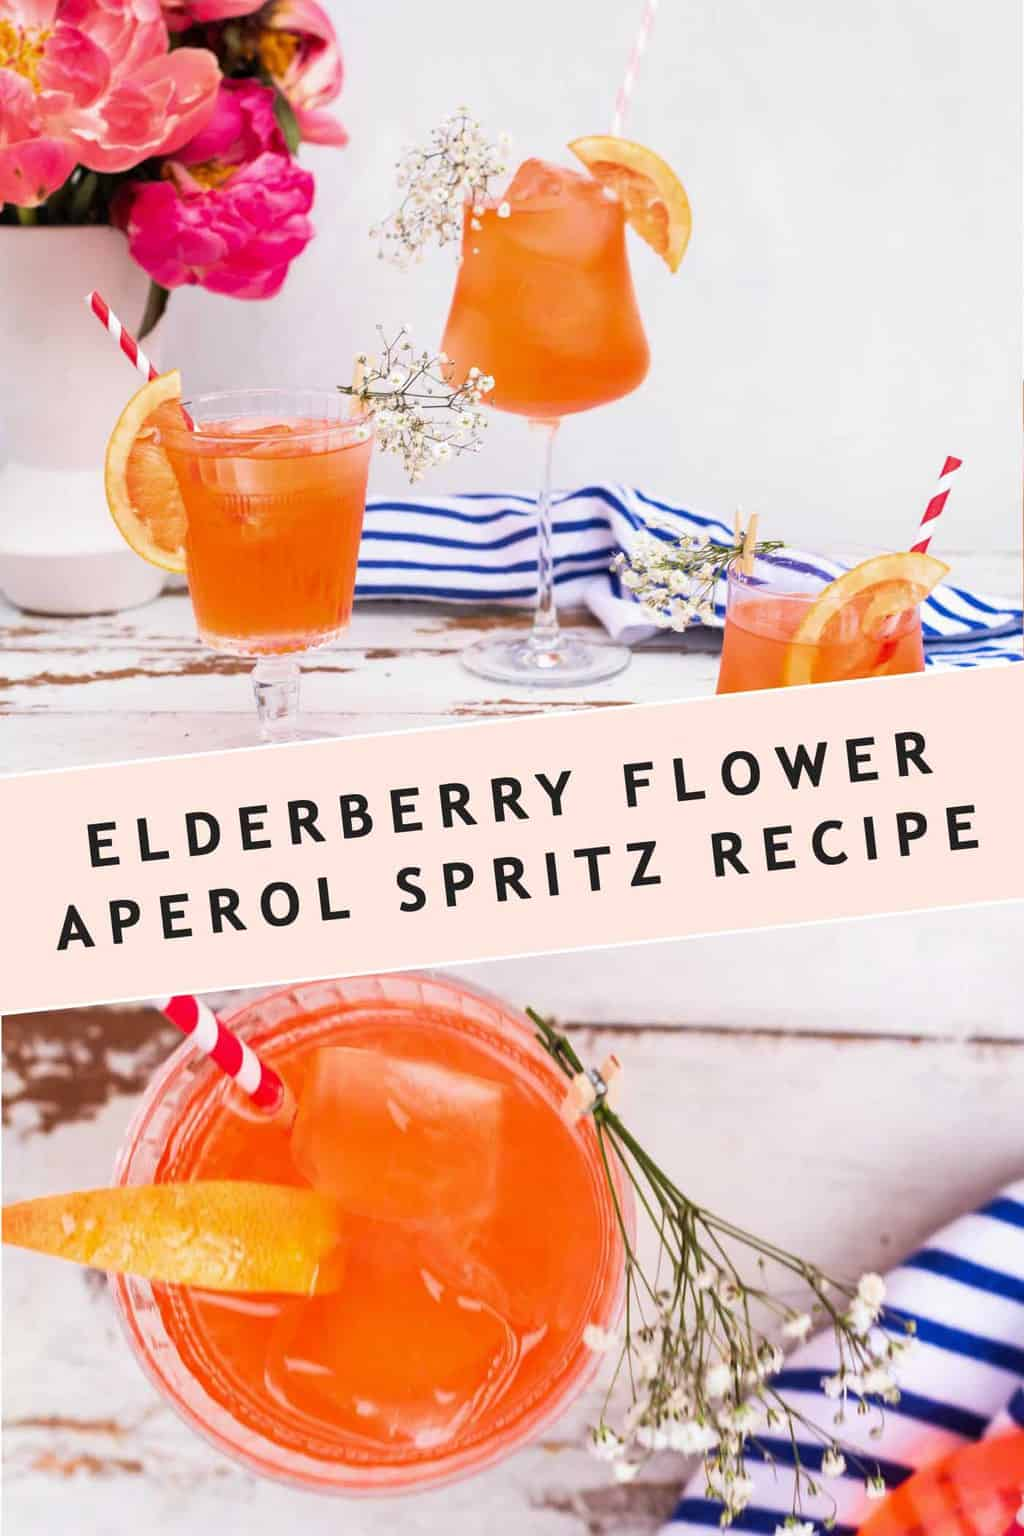 photo of editorial shots of the Elderflower Aperol Spritz cocktail recipe card by top Houston lifestyle blogger Ashley Rose of Sugar & Cloth